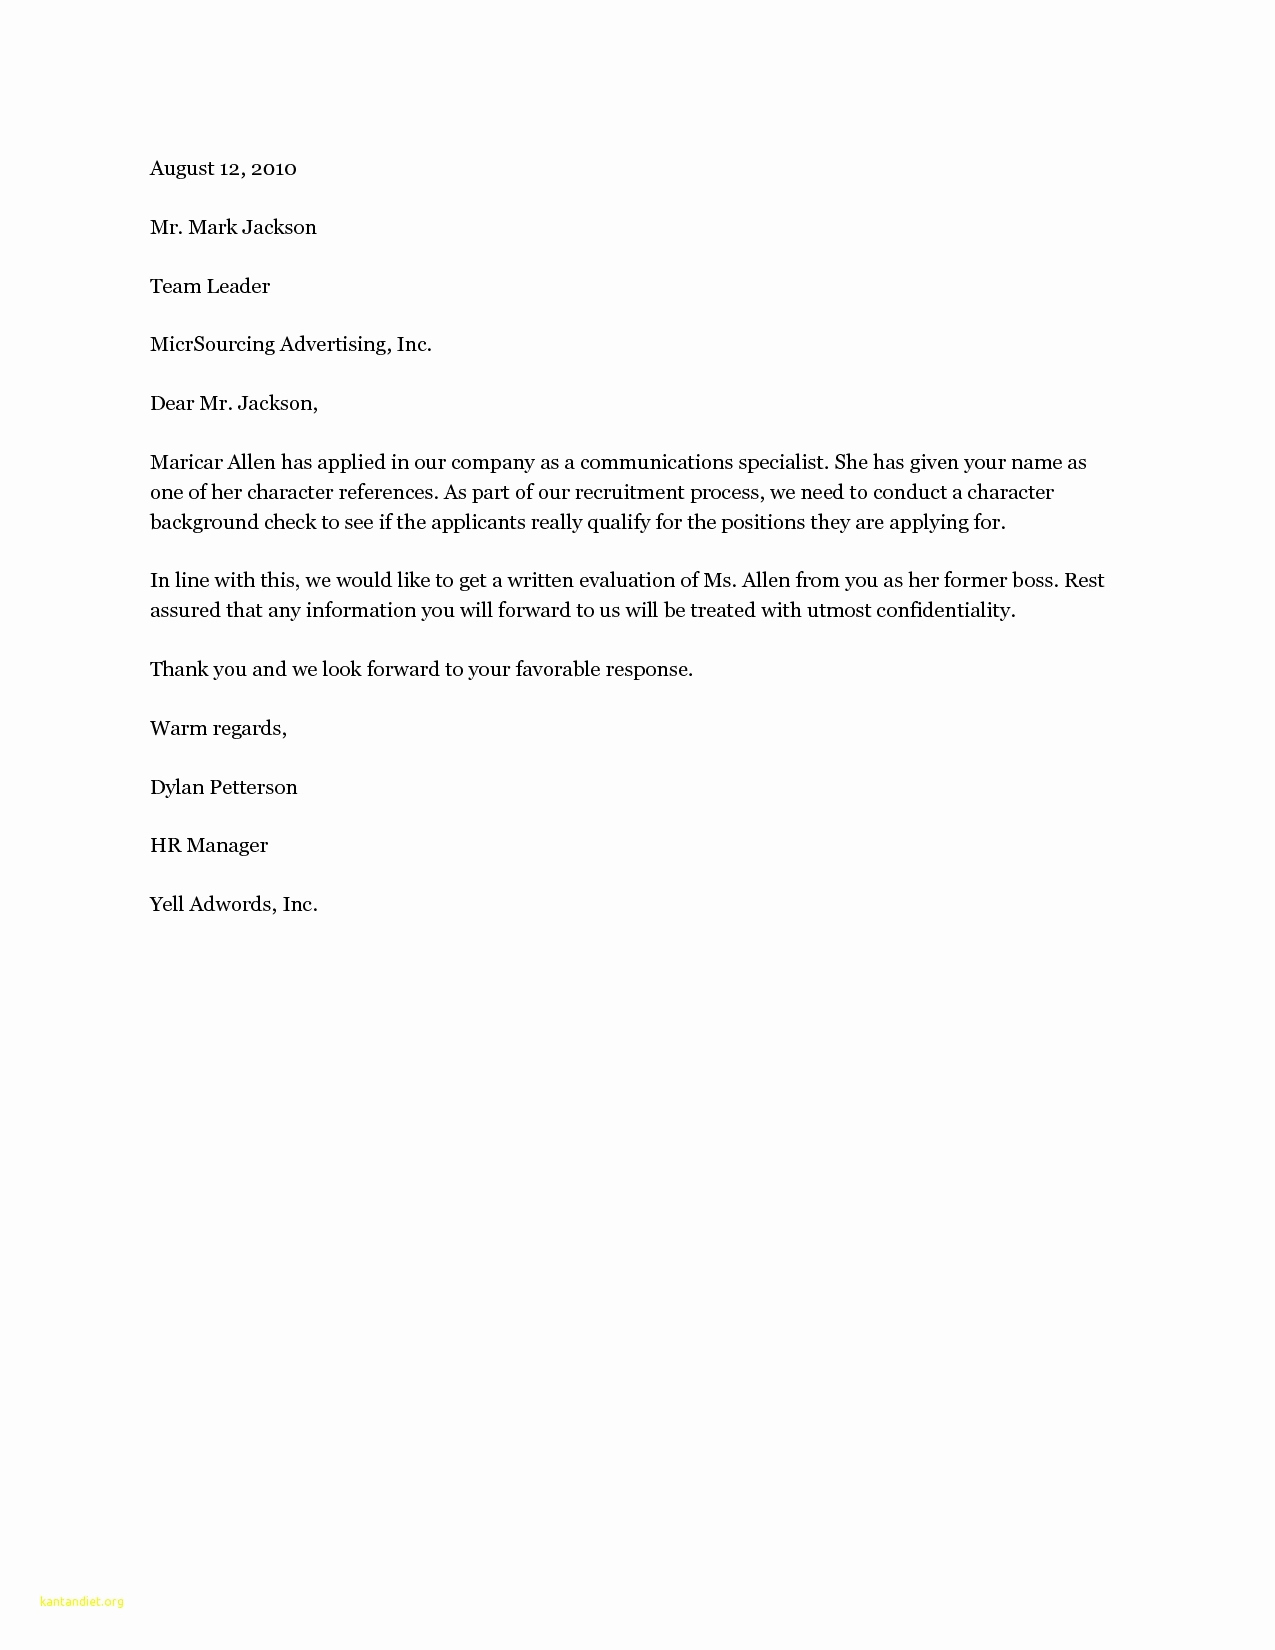 Personal Reference Letter Template Word - 50 Fresh Cover Letter Template Word Doc